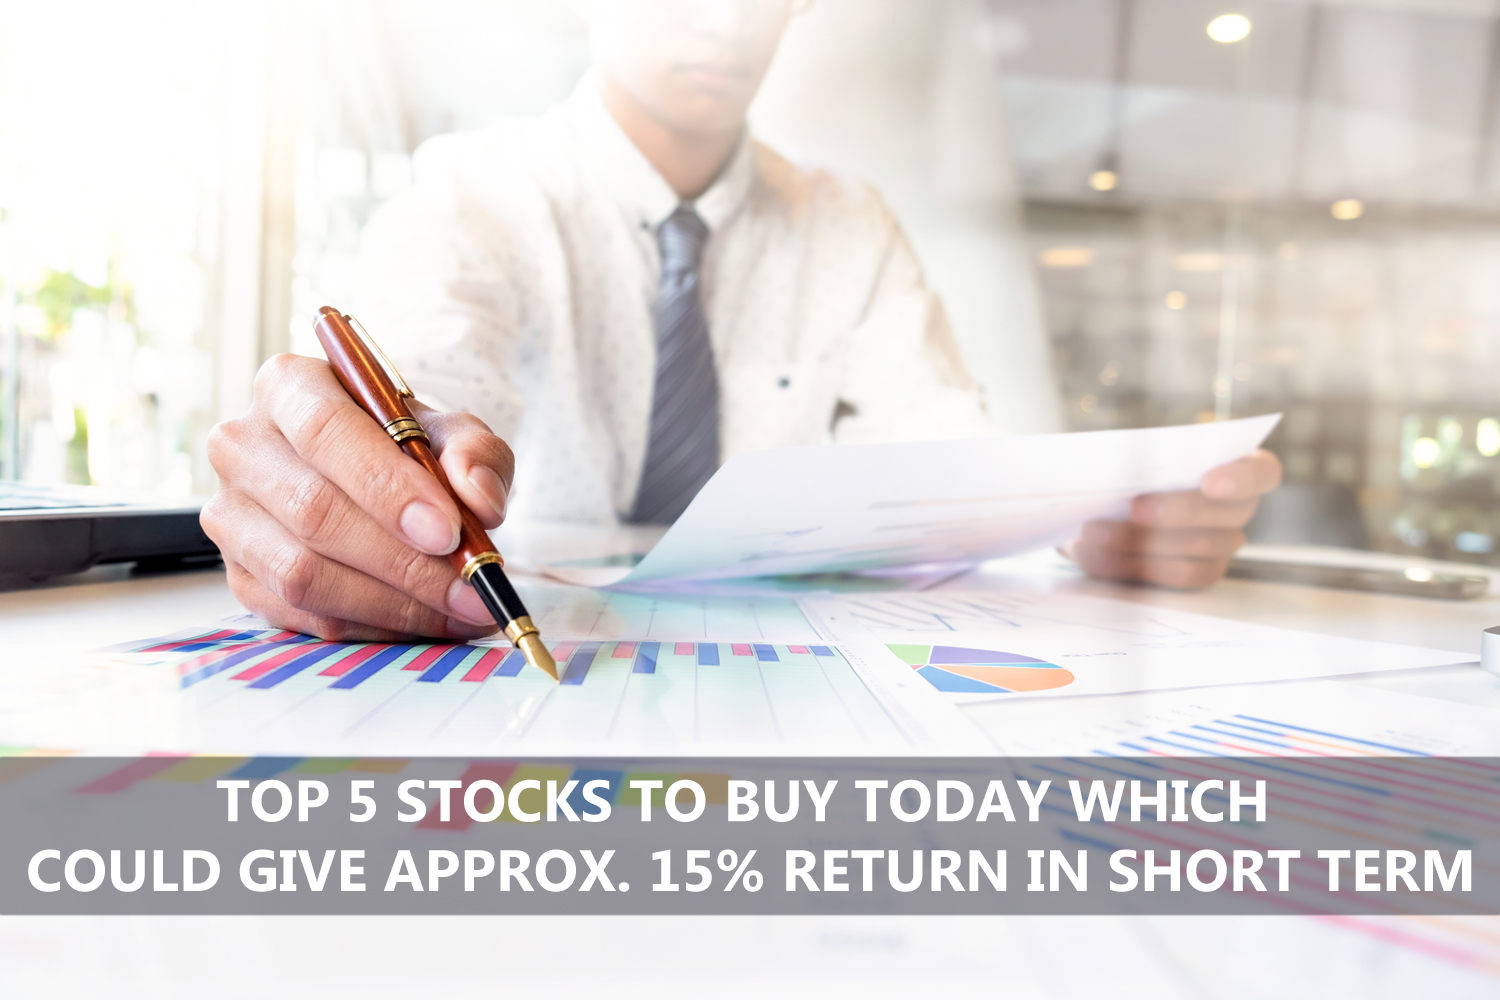 Top 5 Stocks to Buy Today Which Could Give Approx 15% Return in Short Term